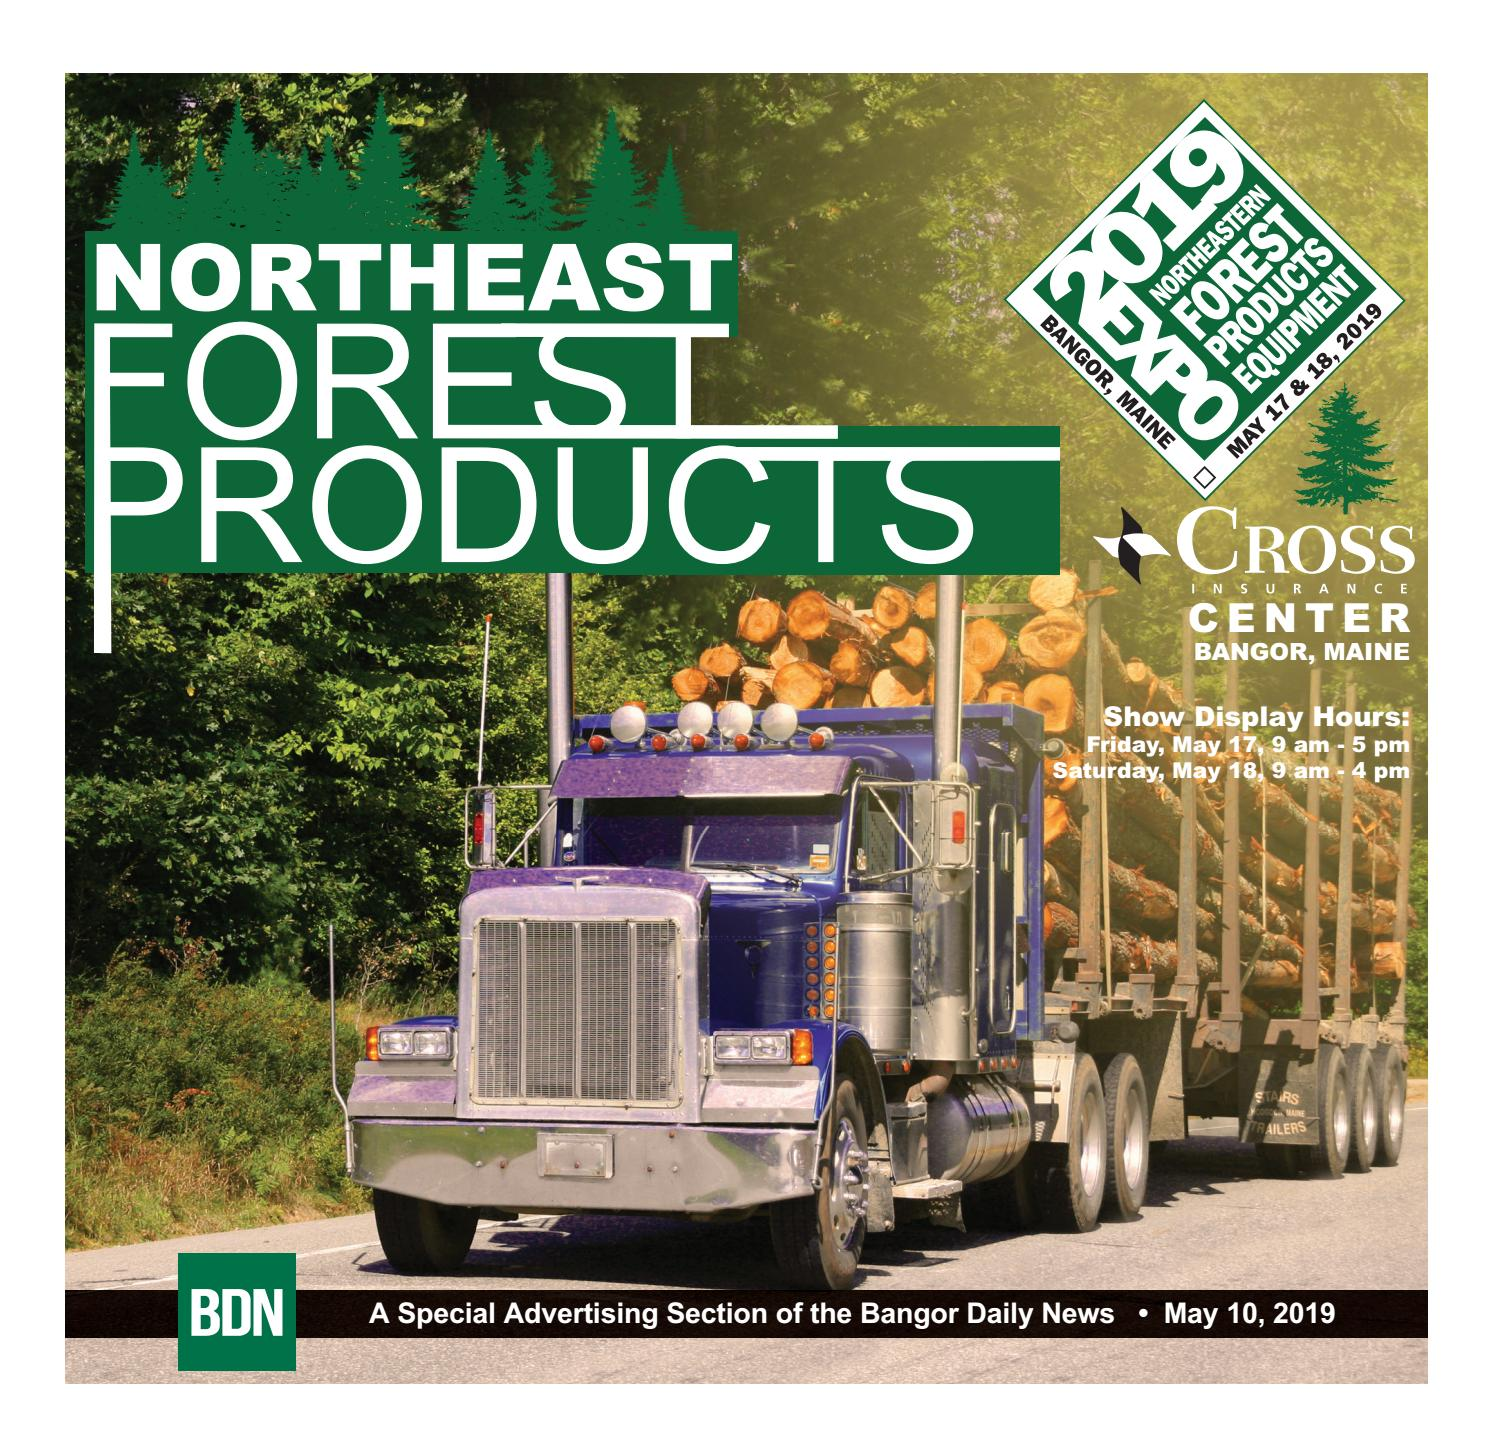 Forest Products 2019 by Bangor Daily News - issuu